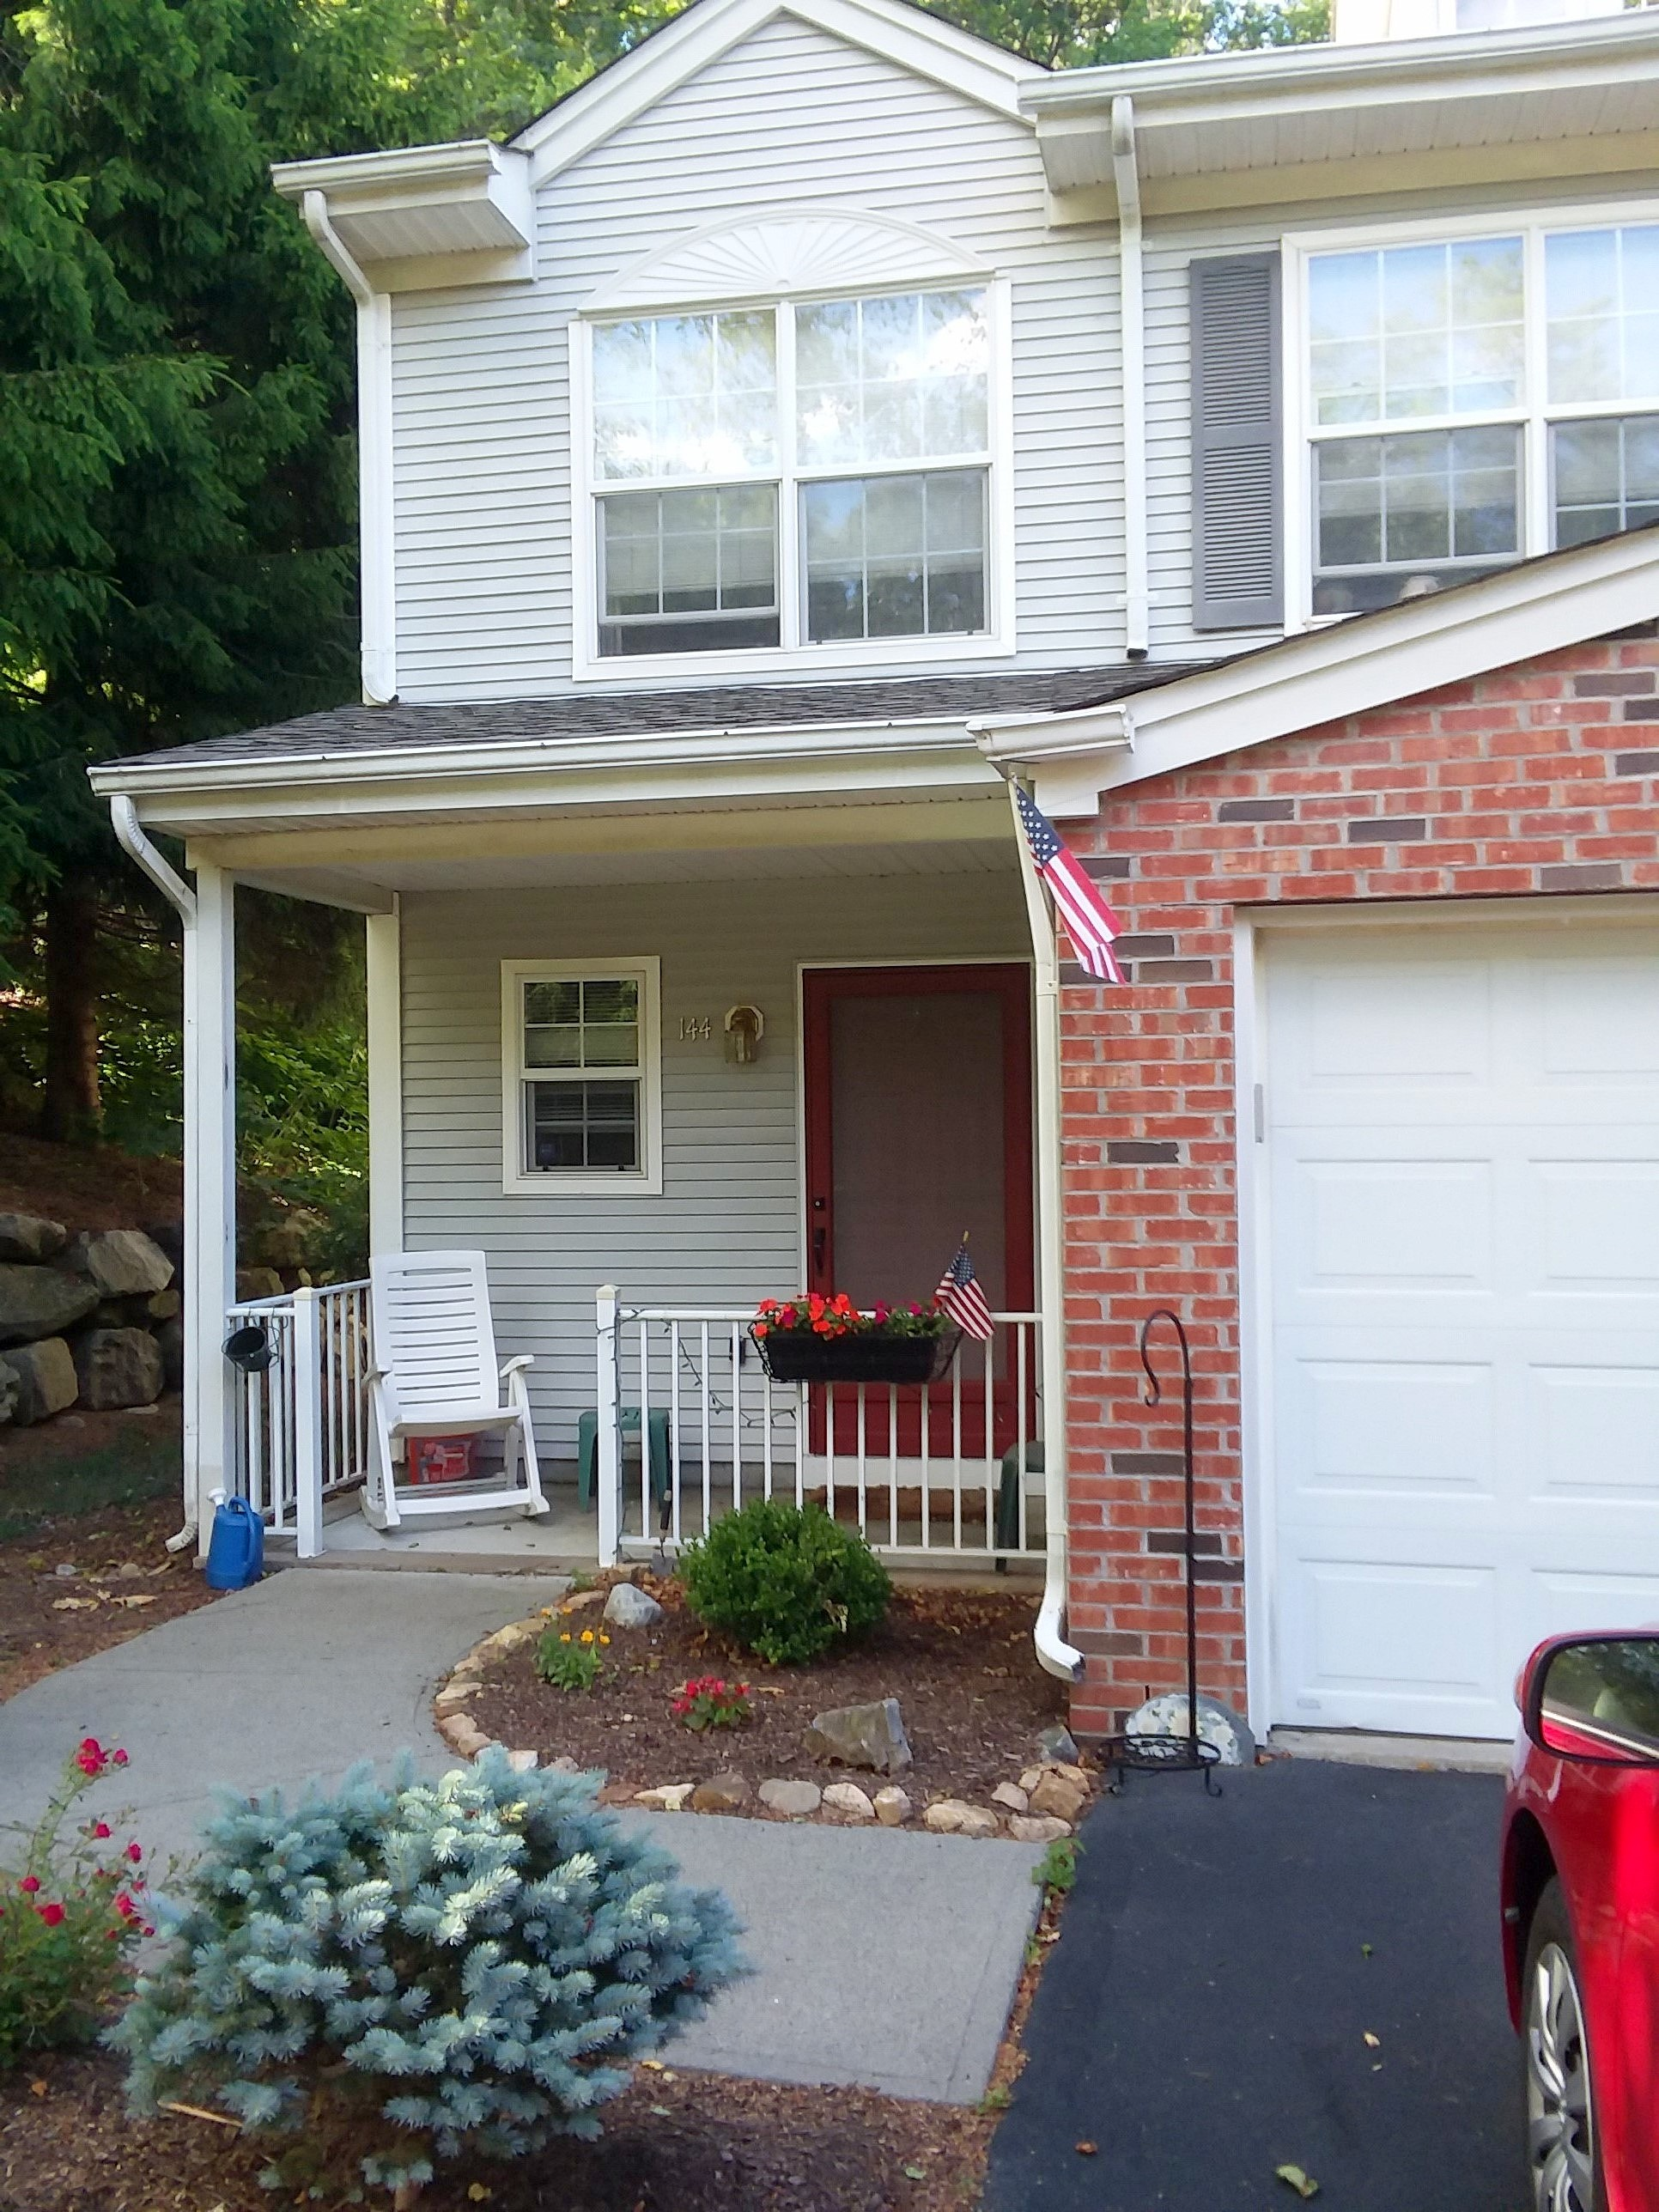 2 Bedrooms / 2.5 Bathrooms - Est. $2,061.00 / Month* for rent in Mount Arlington, NJ